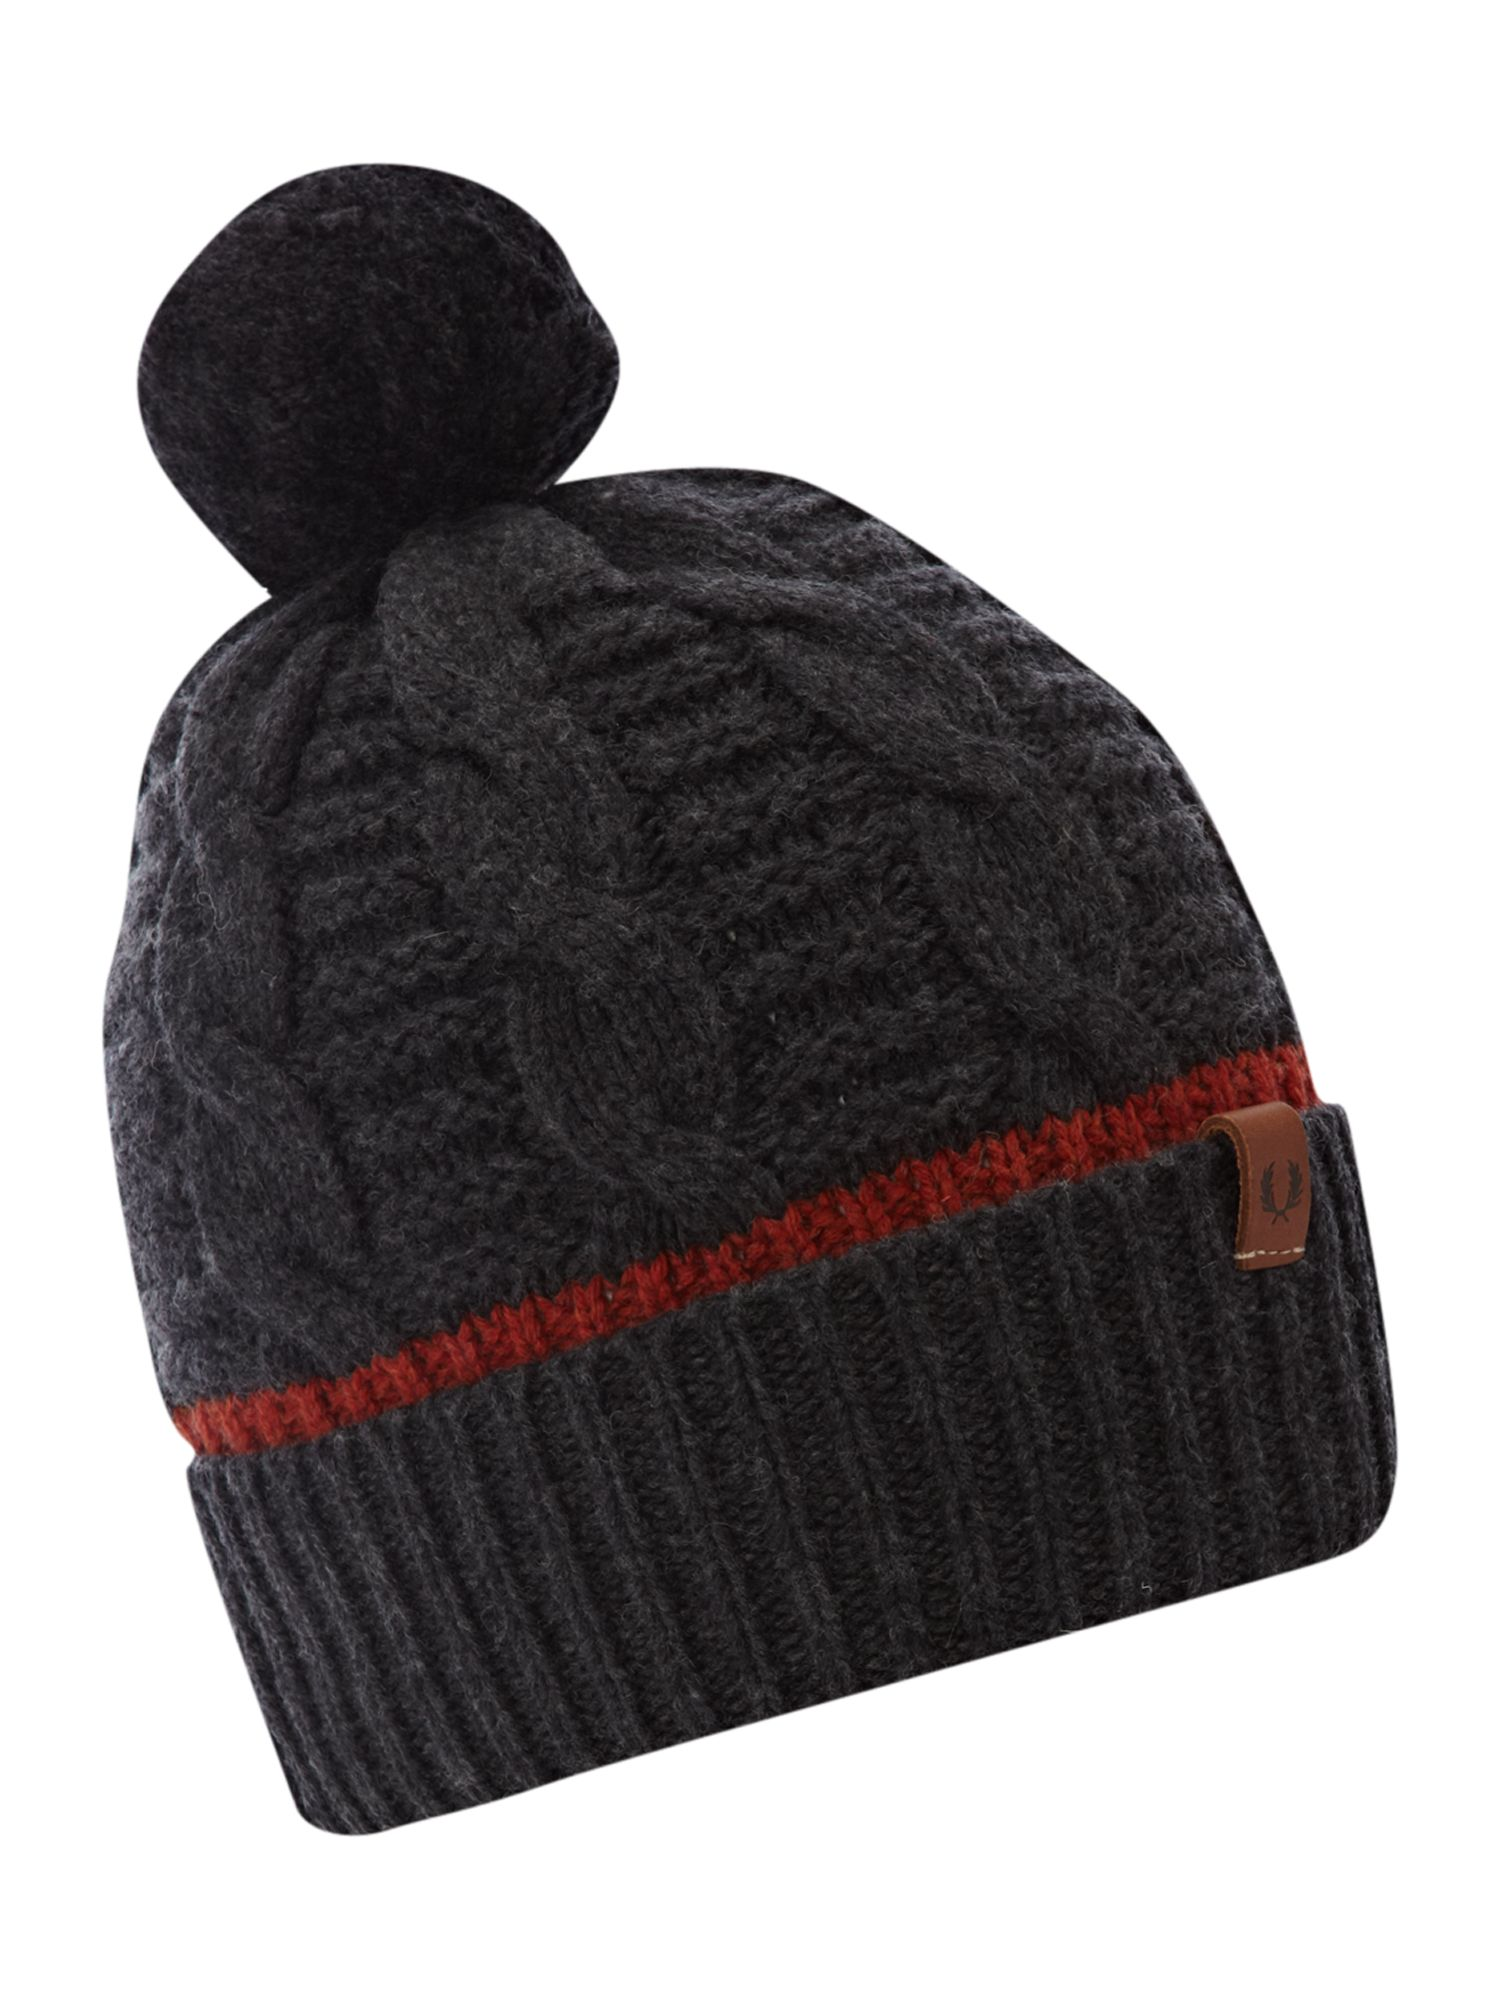 Knitting Chunky Hat : Fred perry chunky knit beanie hat in gray for men grey